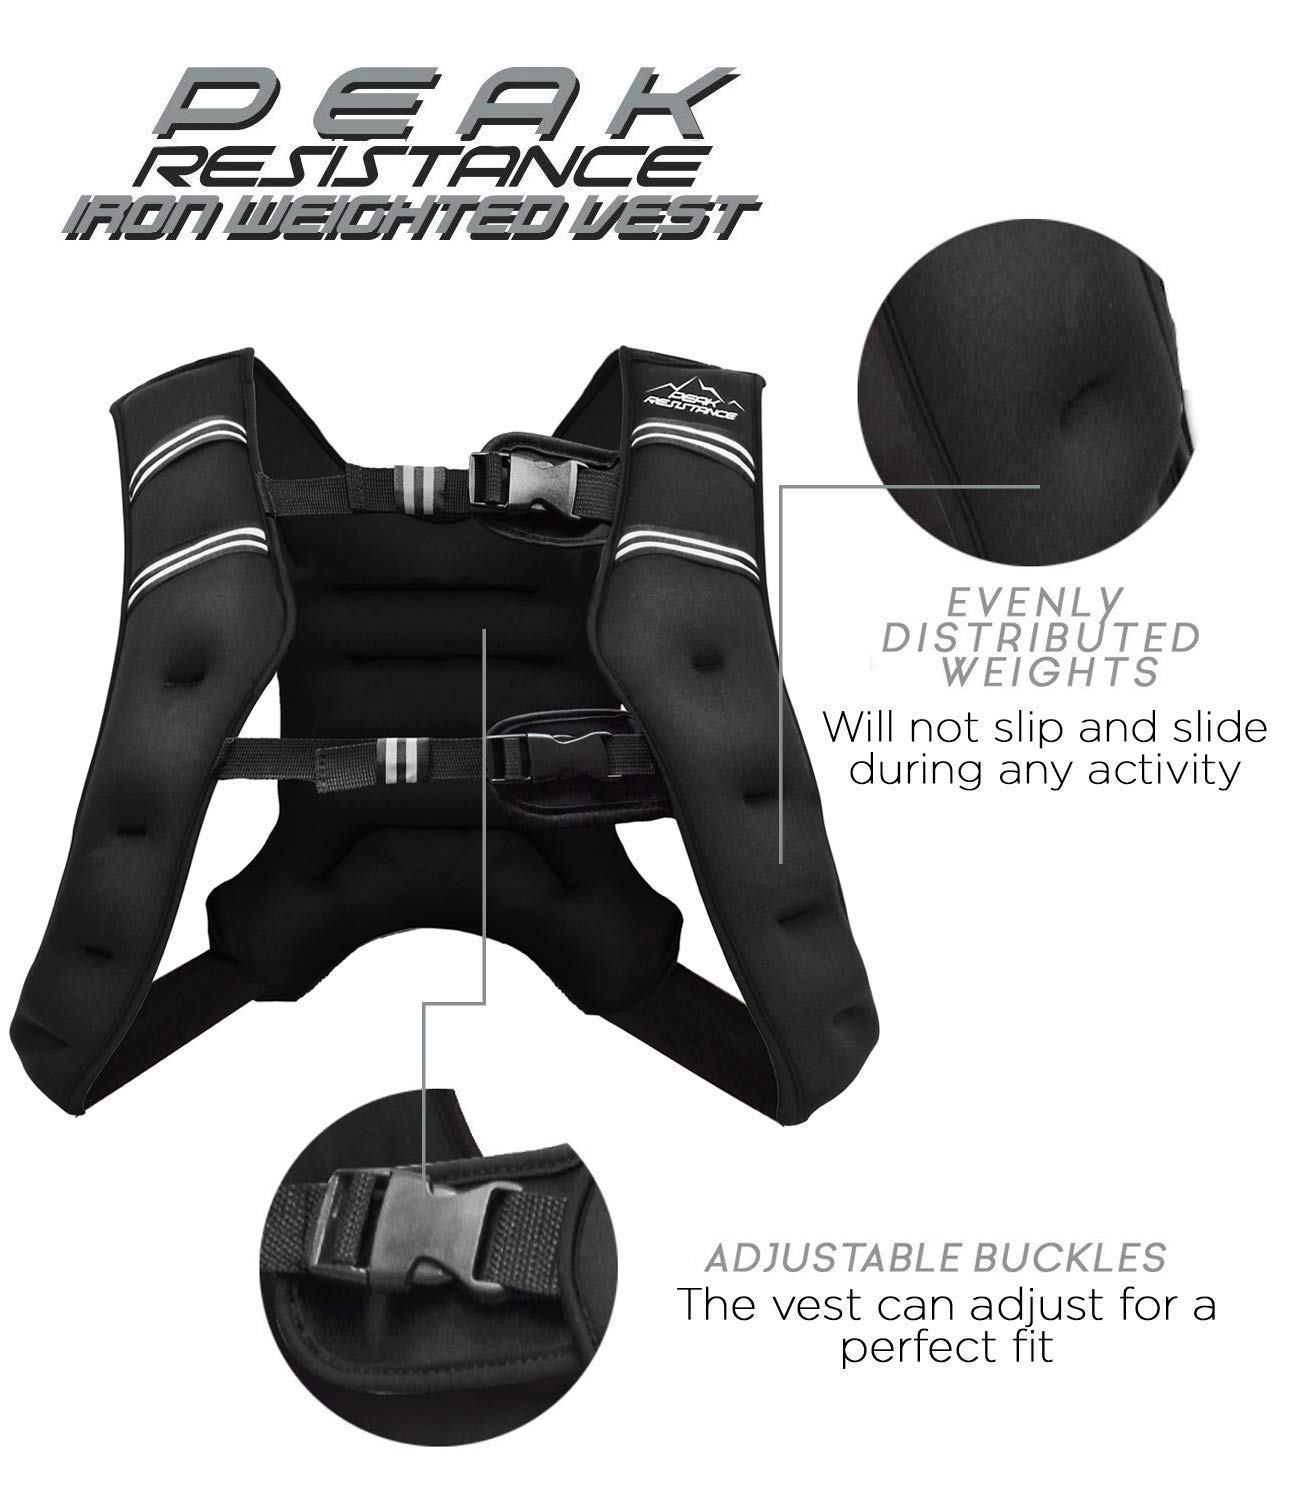 Aduro Sport Weighted Vest Workout Equipment 25lbs Body for sale online